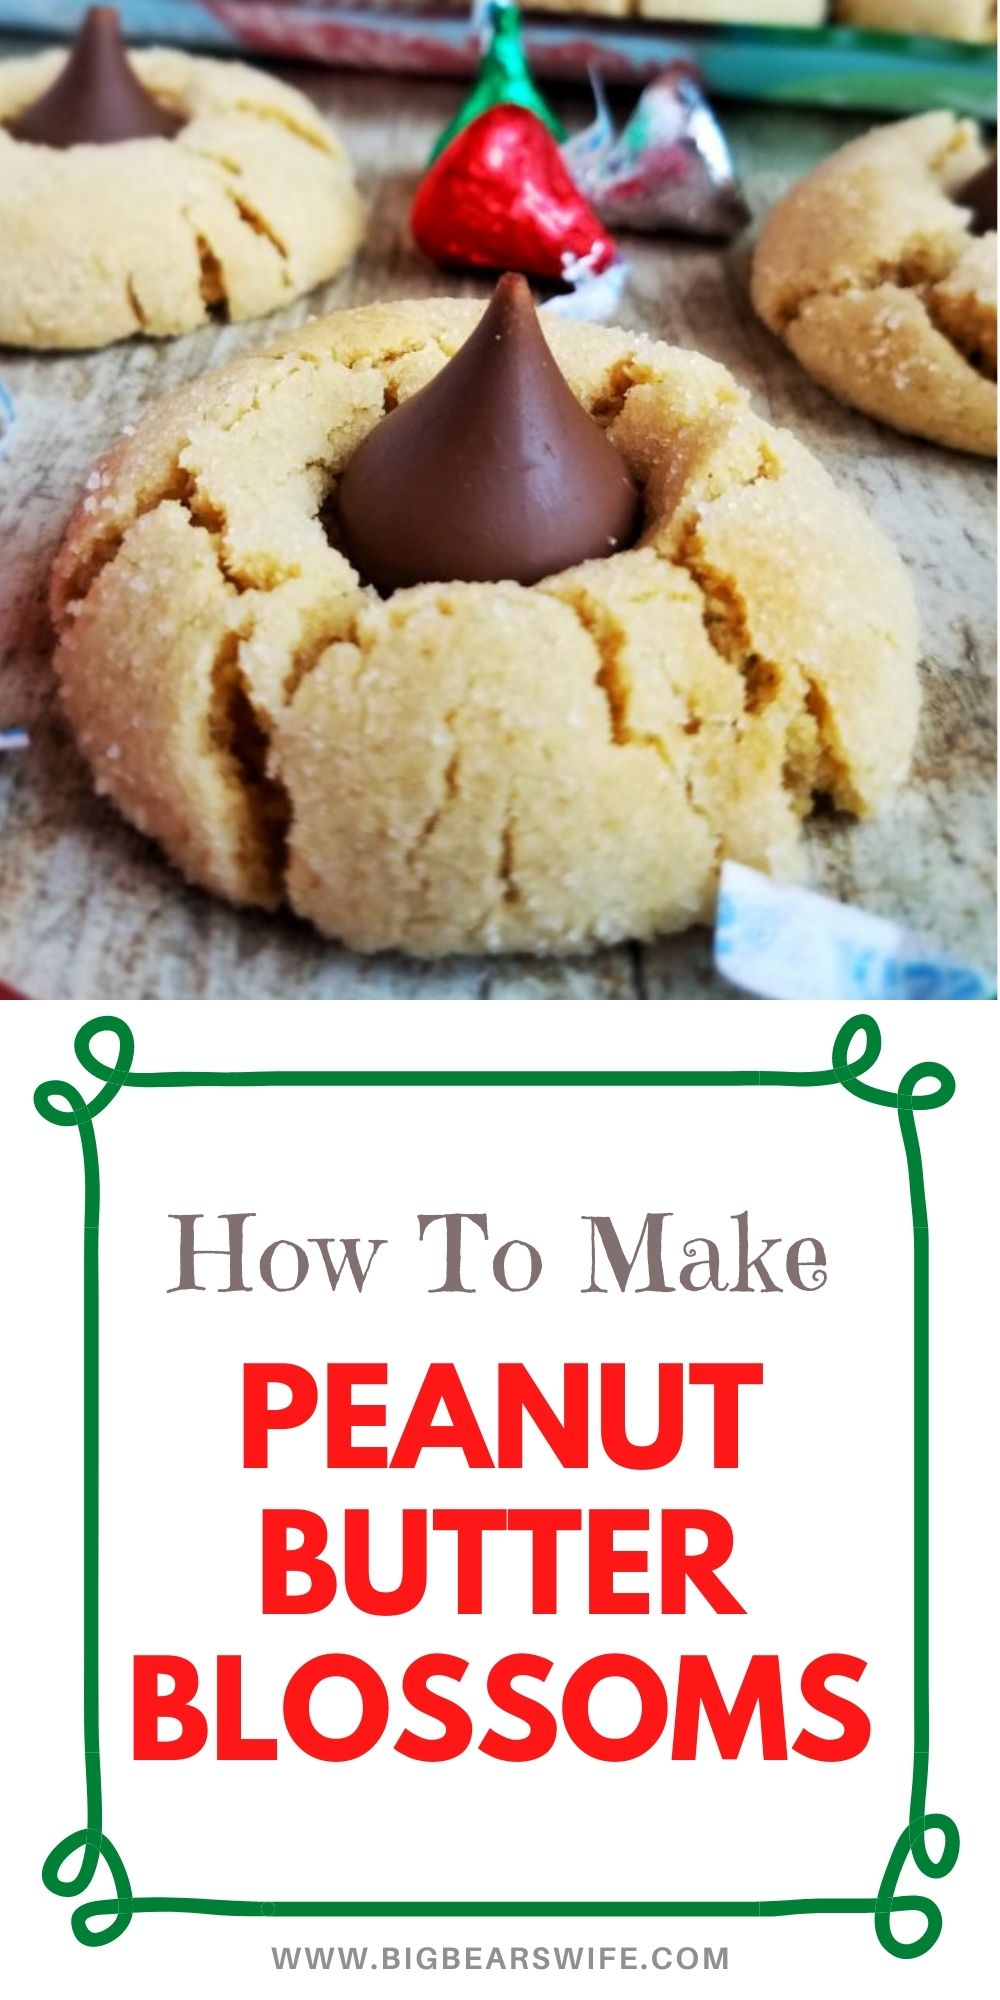 Sweet Peanut Butter cookies rolled in sugar and then baked to perfection! As soon as they come out of the oven, press a chocolate kiss down into the center to make the best Peanut Butter Blossoms! via @bigbearswife